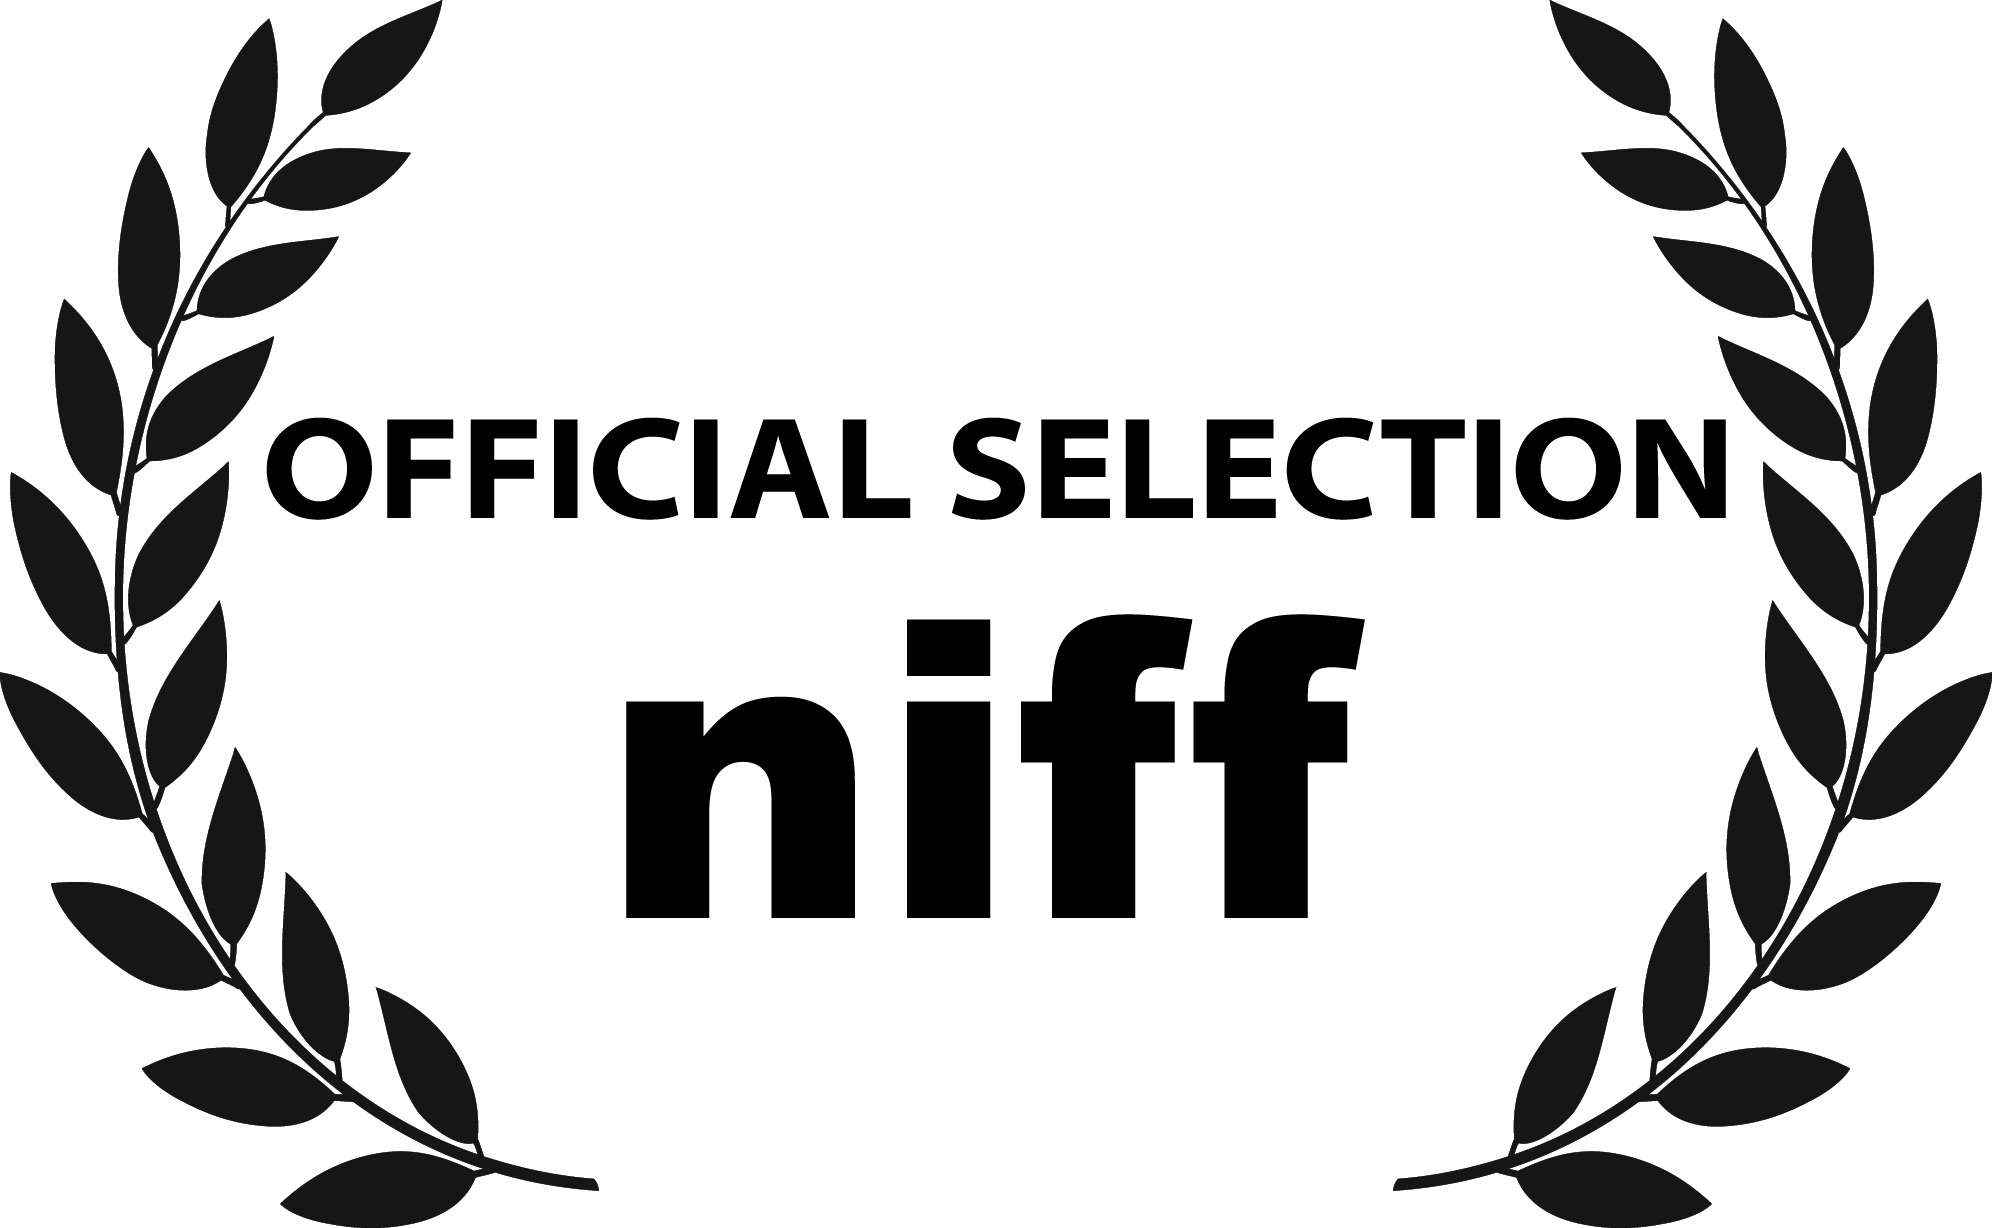 NIFF official selection black transparent.jpg